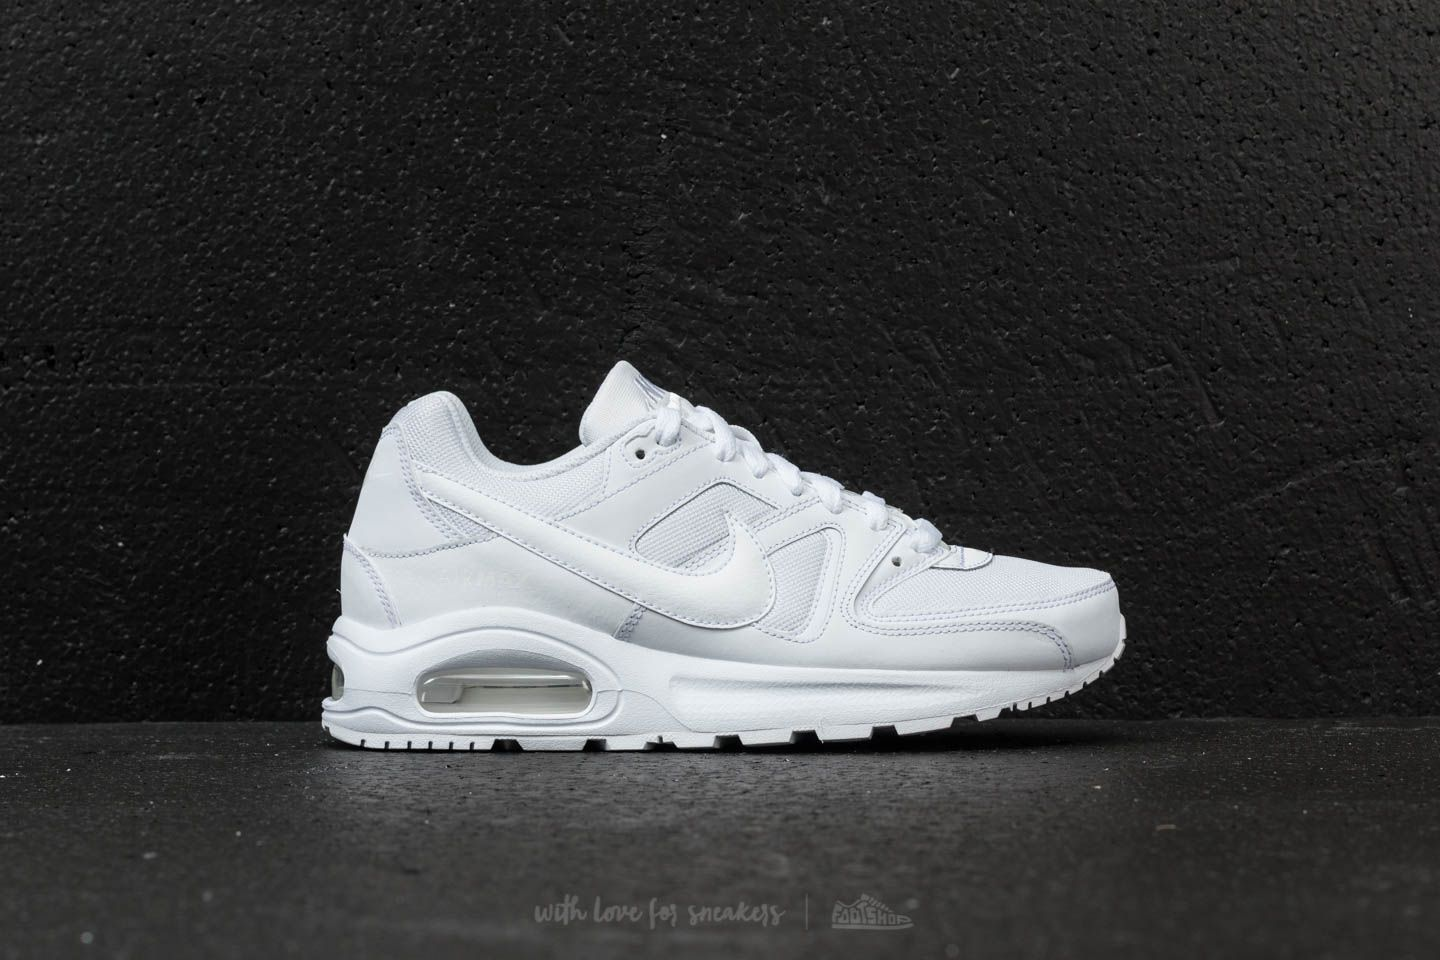 nike air max command flex 36 off 63%